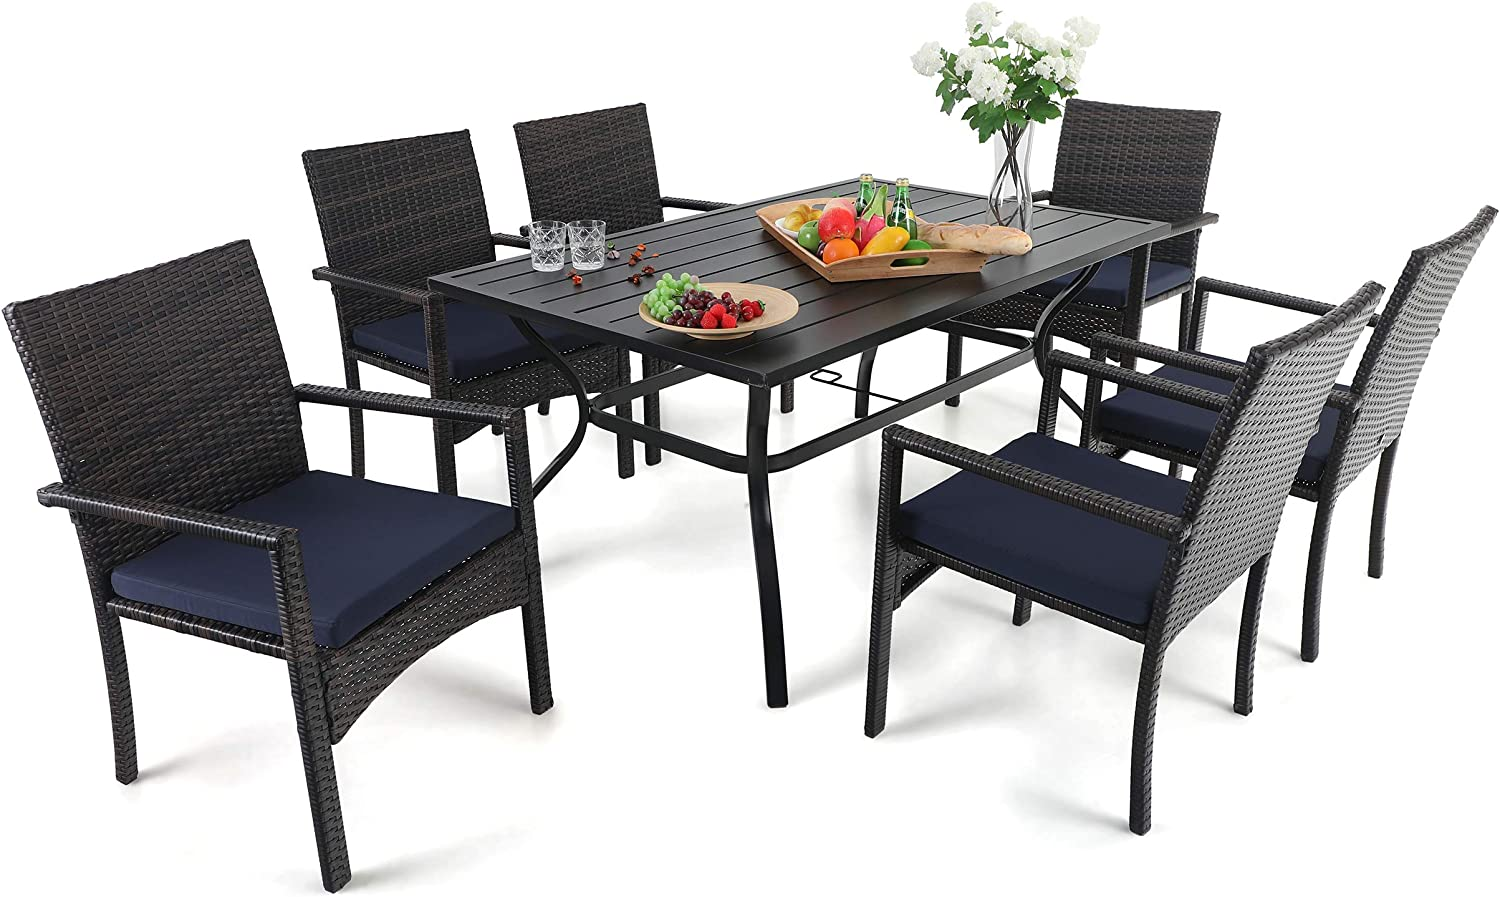 """PHI VILLA 7 Piece Patio Dining Sets, Outdoor Slatted Metal Table with 1.57"""" Umbrella Hole & 6 Rattan Wicker Chair for Deck, Yard, Porch"""